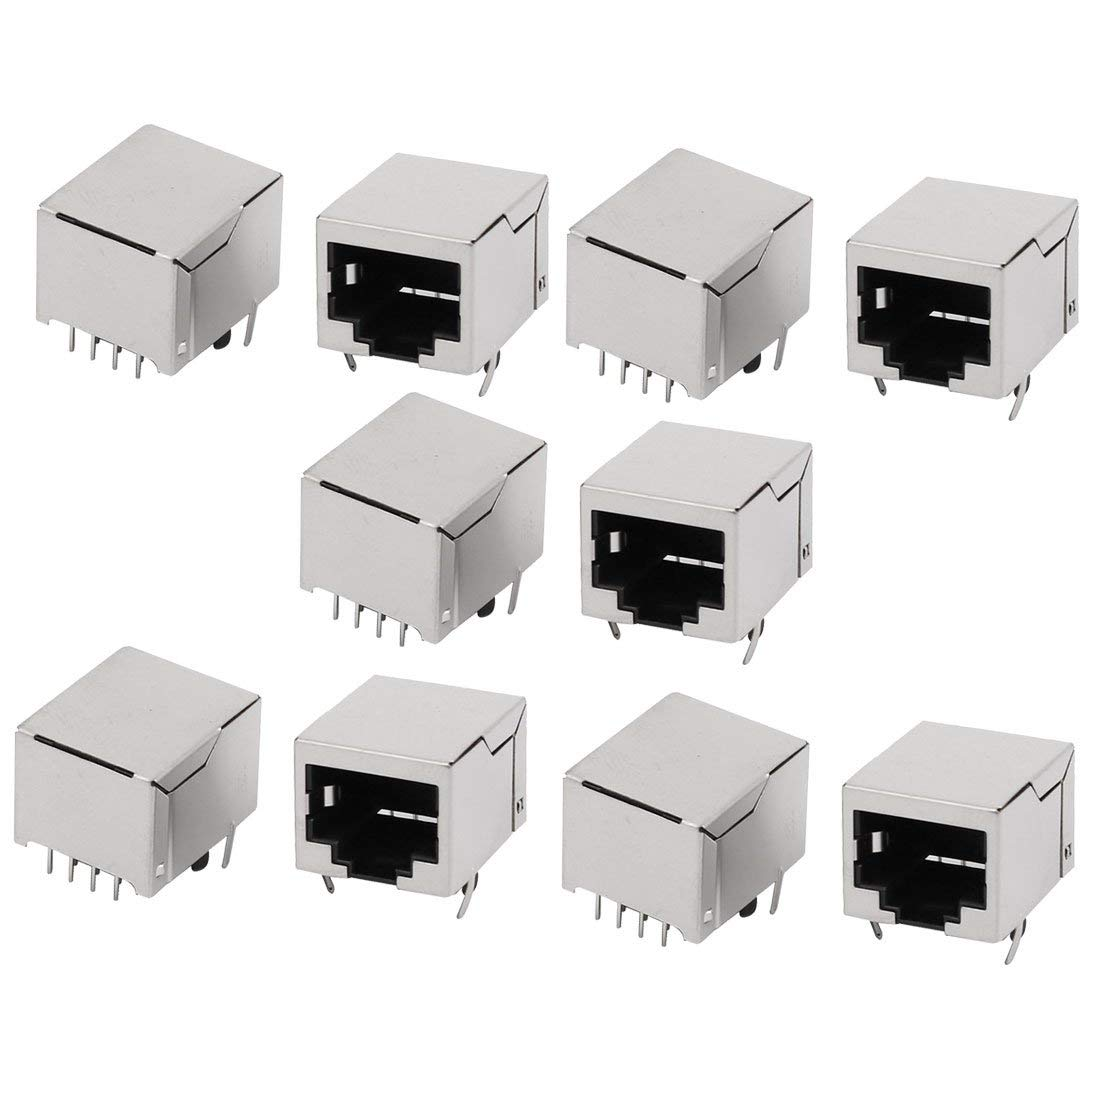 uxcell RJ45 8P8C Female PCB Mounting Modular Jack Ethernet Network Connector 10pcs